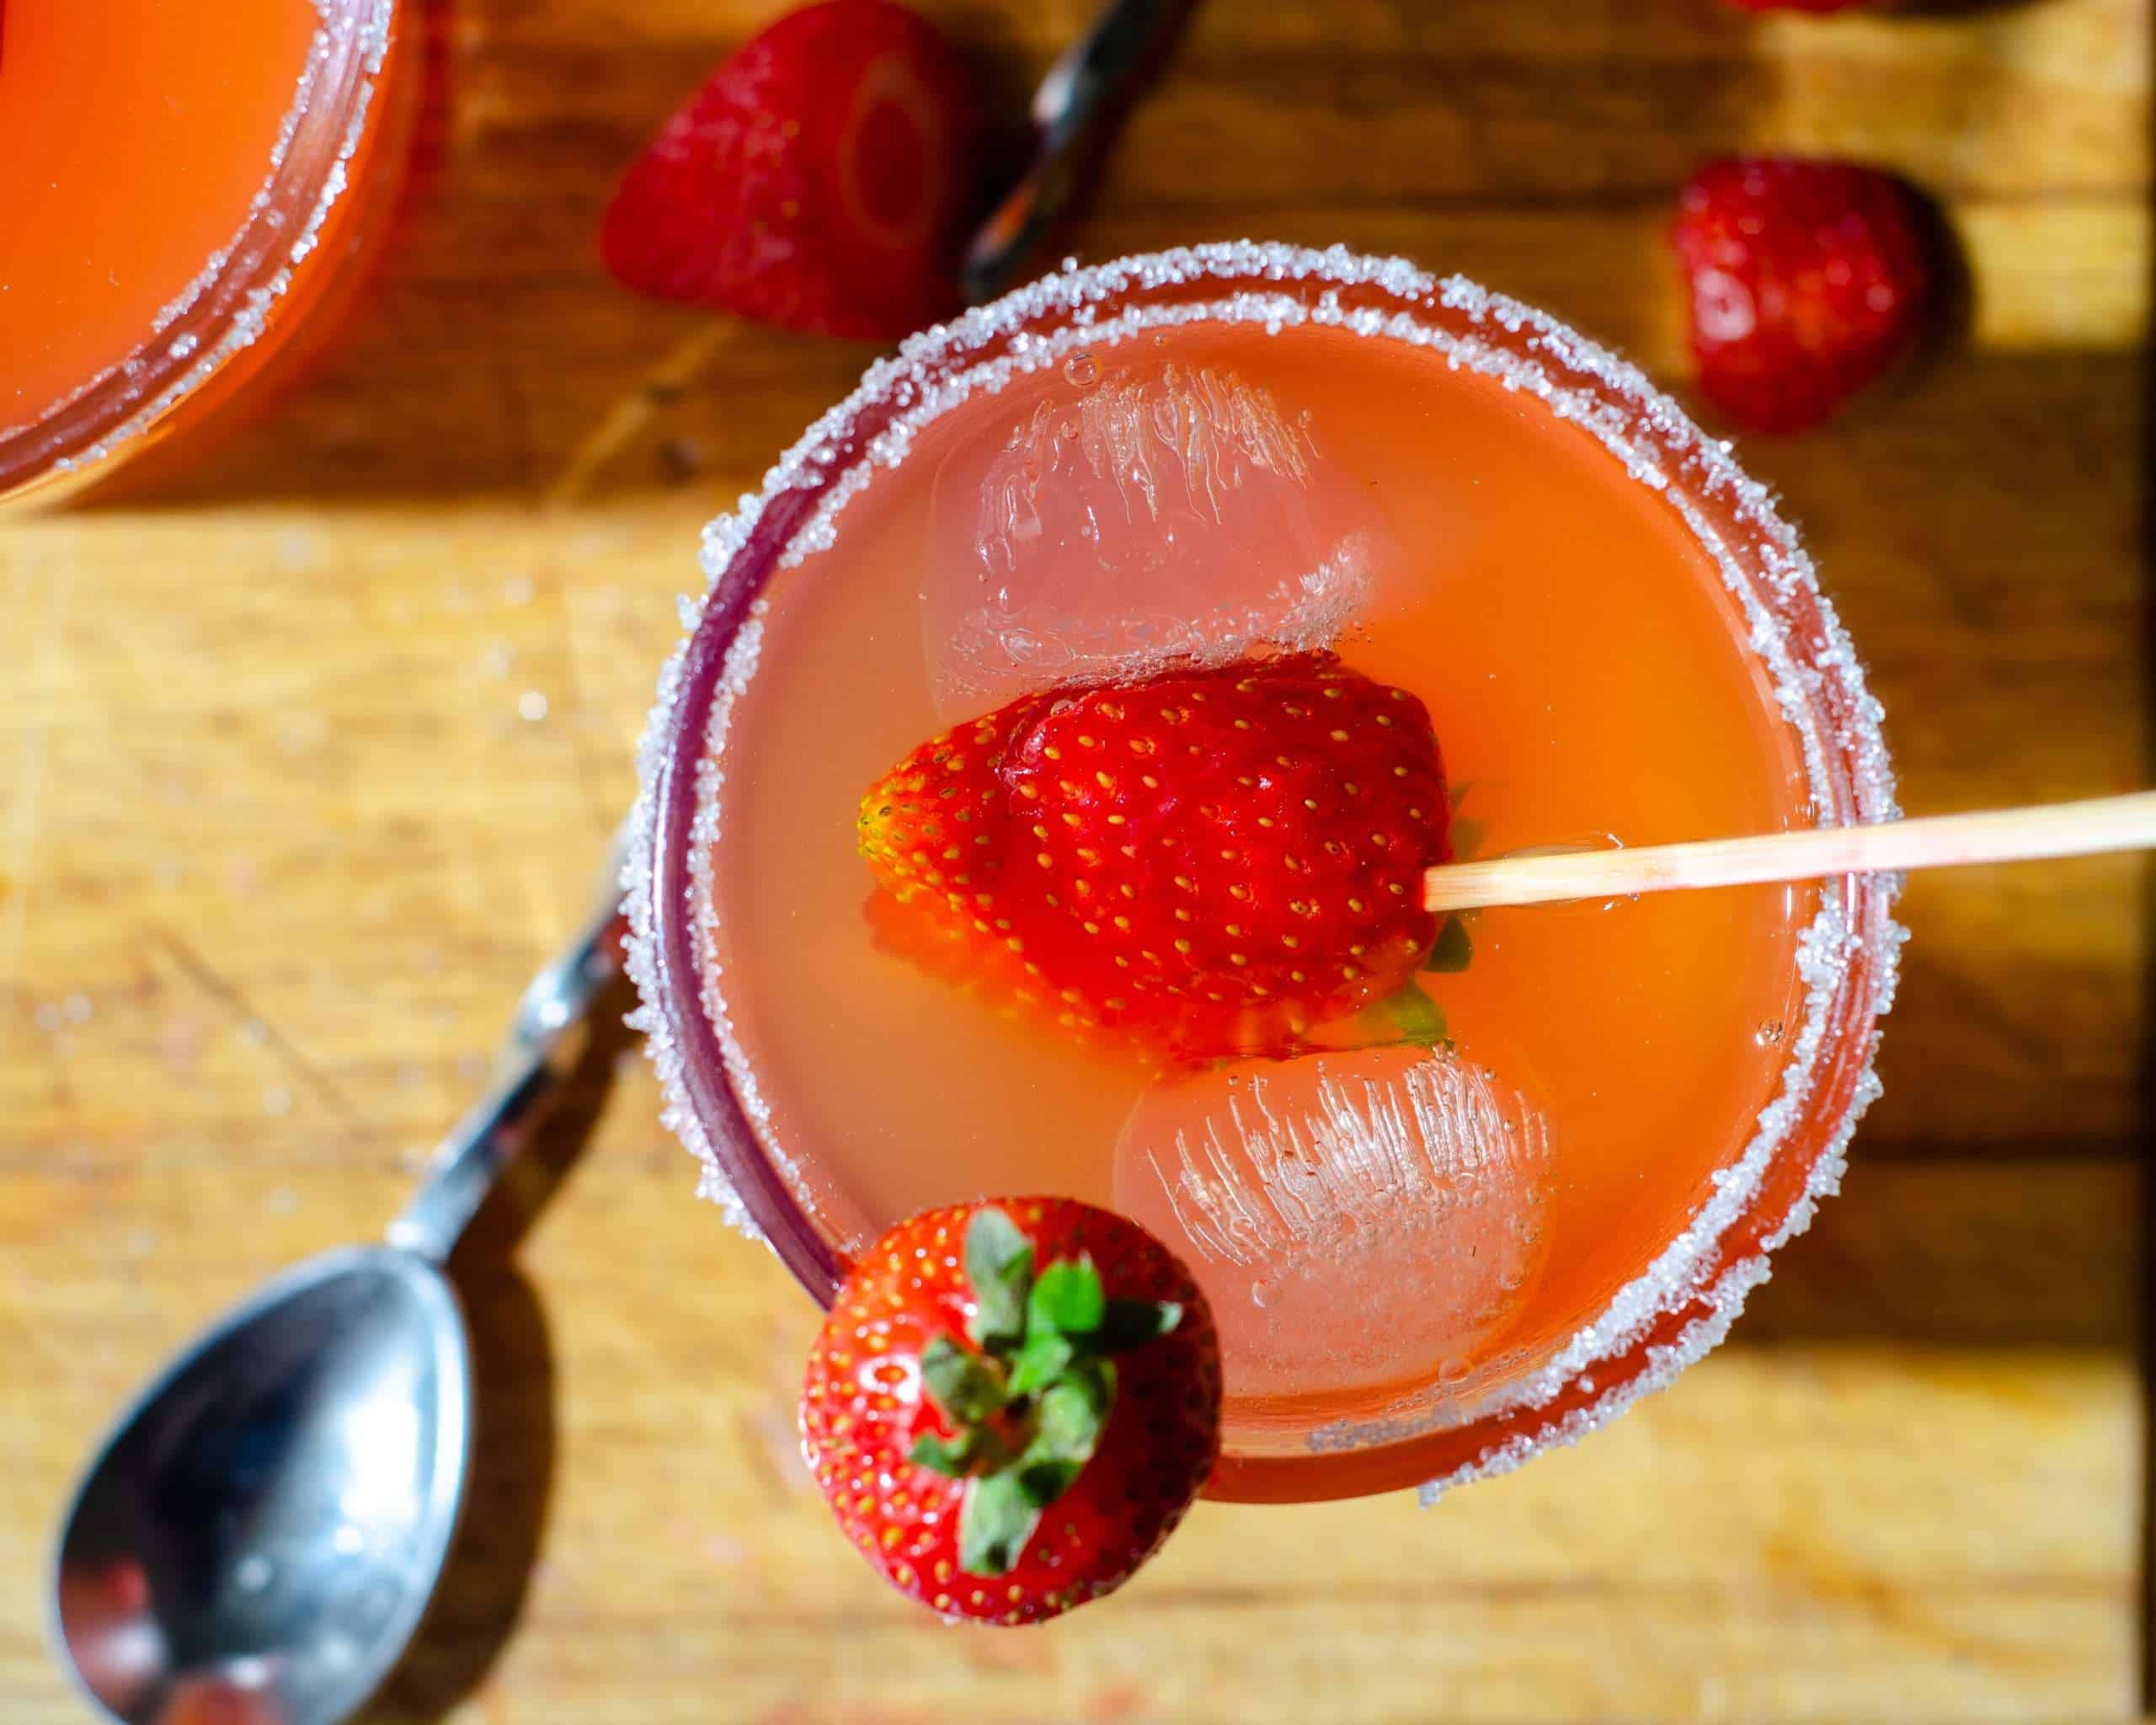 Low carb strawberry lemonade from the top